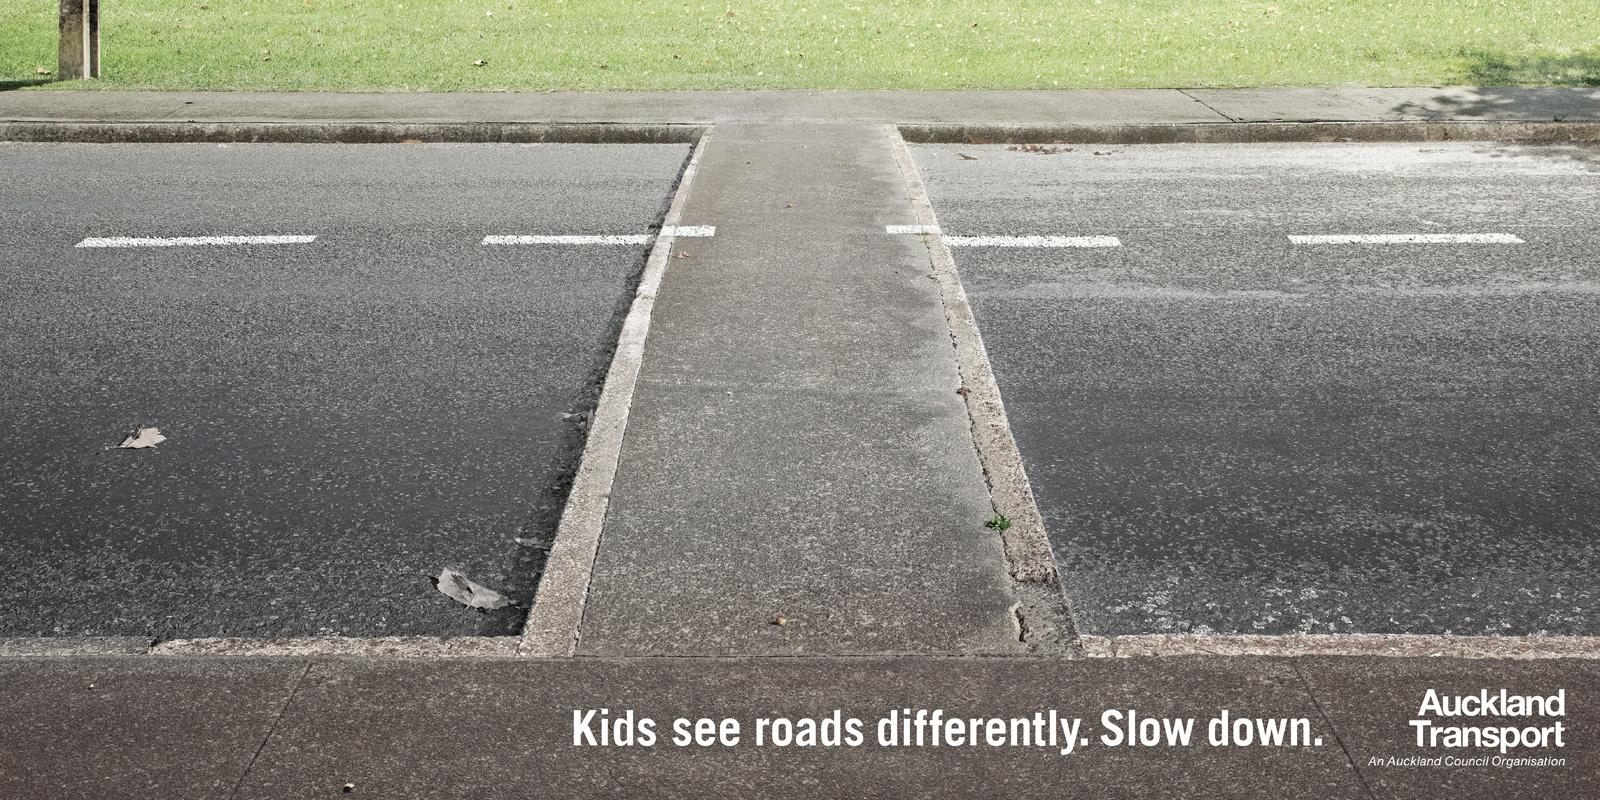 Auckland Transport Outdoor Ad -  Kids see roads differently